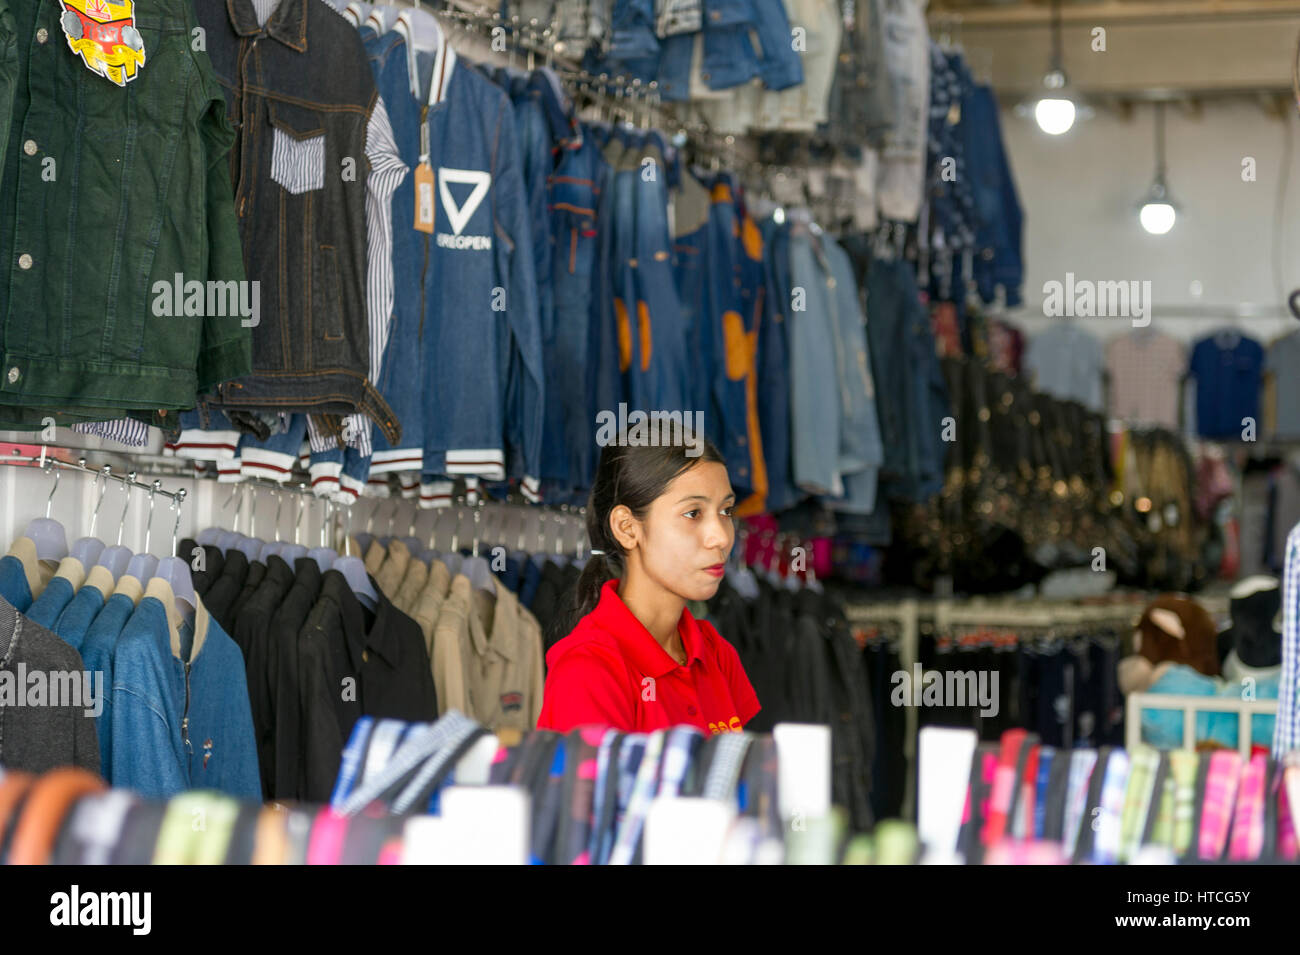 Myanmar (formerly Burma). Mon State. Mawlamyine (Moulmein). Saleswoman in a clothing store - Stock Image